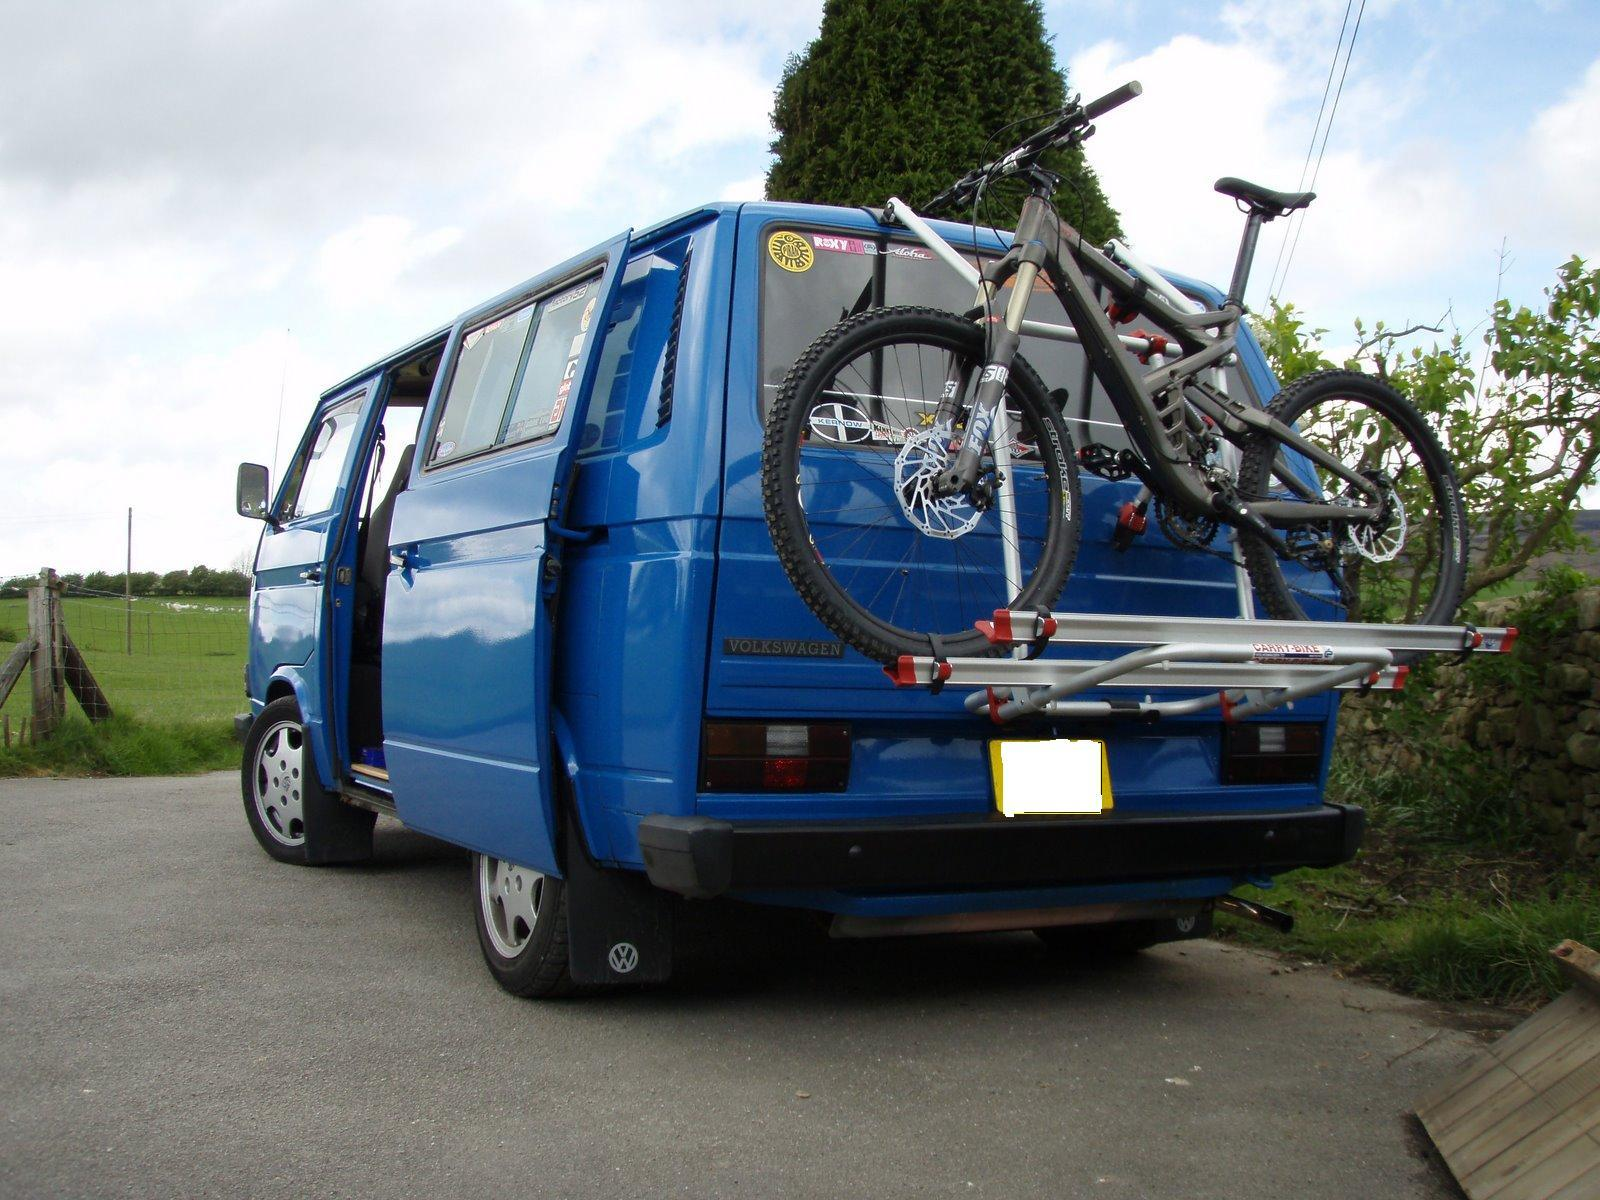 bike gumtree dorset rack bicycle bournemouth accessories in p vw fiamma